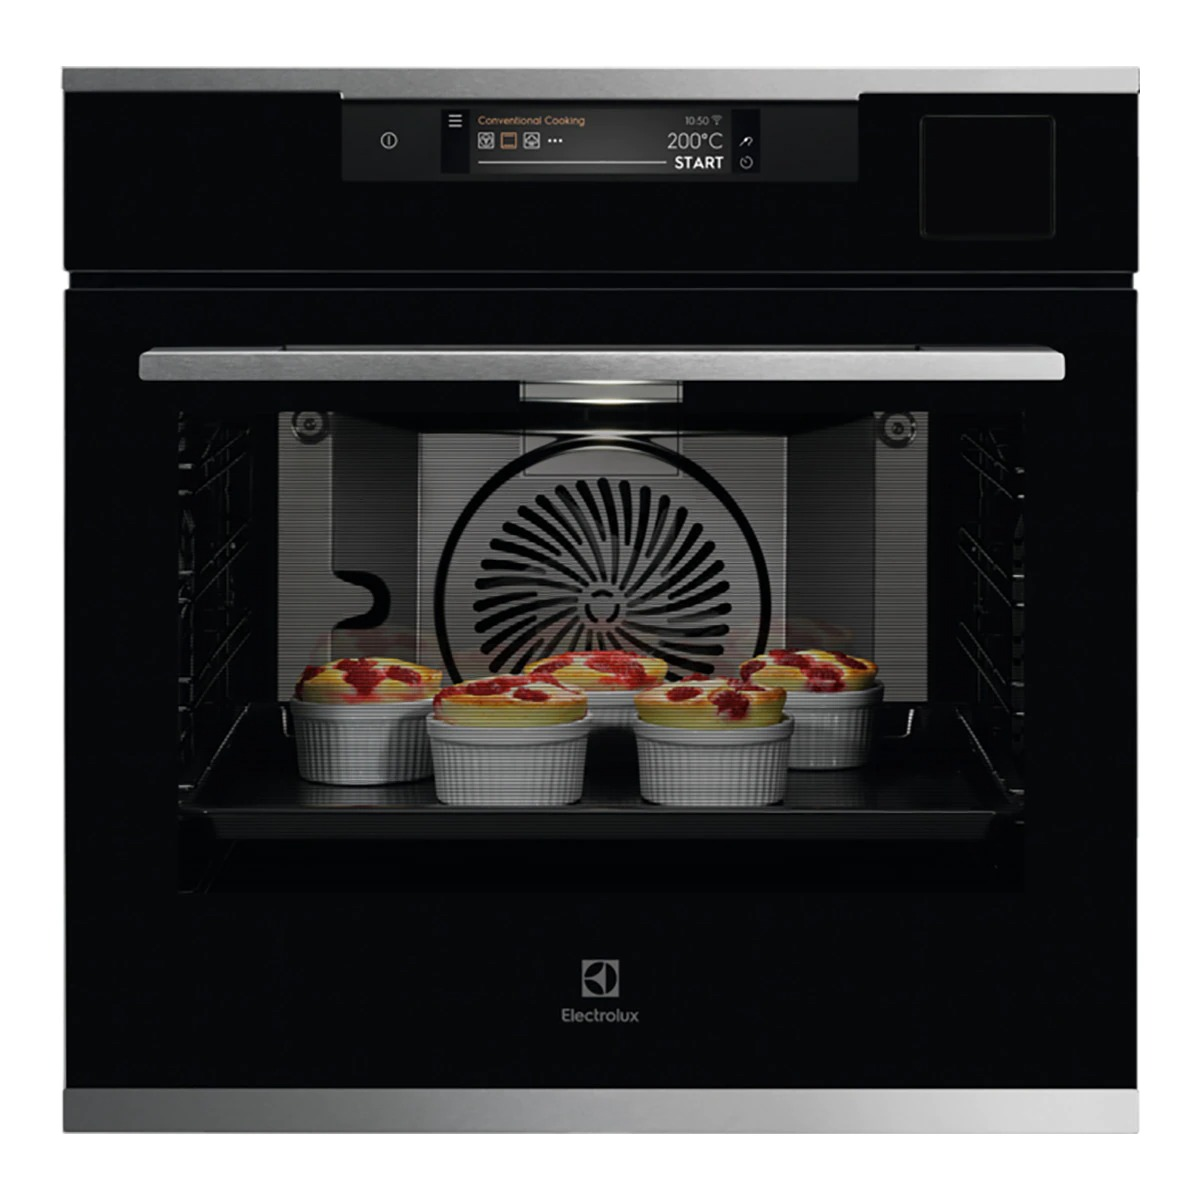 Electrolux KOAAS31CX Multifunction Oven with Steam Cleaning